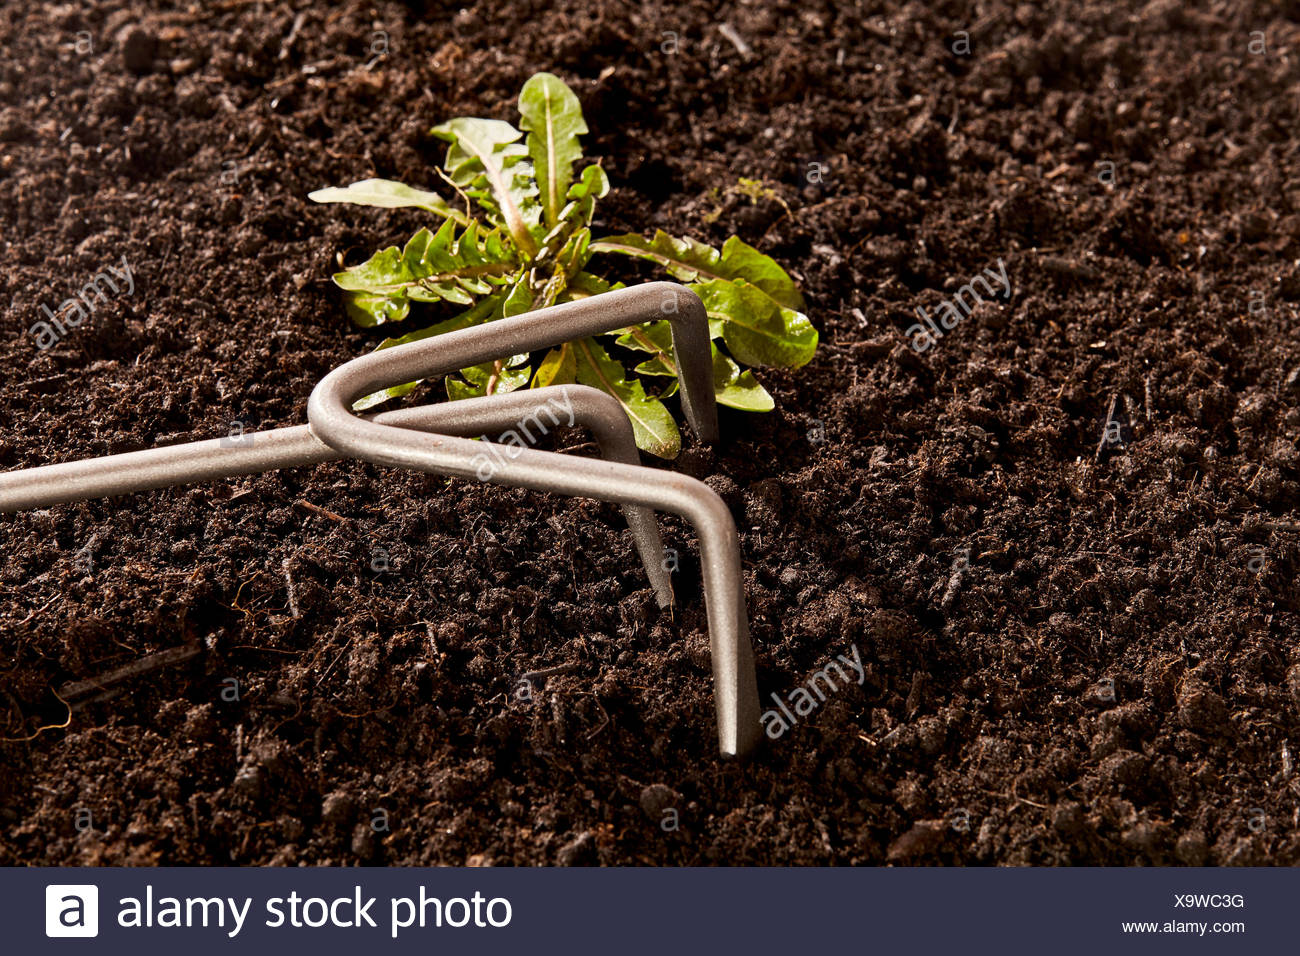 Weeding out undesirable weeds with a small metal rake in a fertile flowerbed, close up view of the garden tool and seedling weed - Stock Image